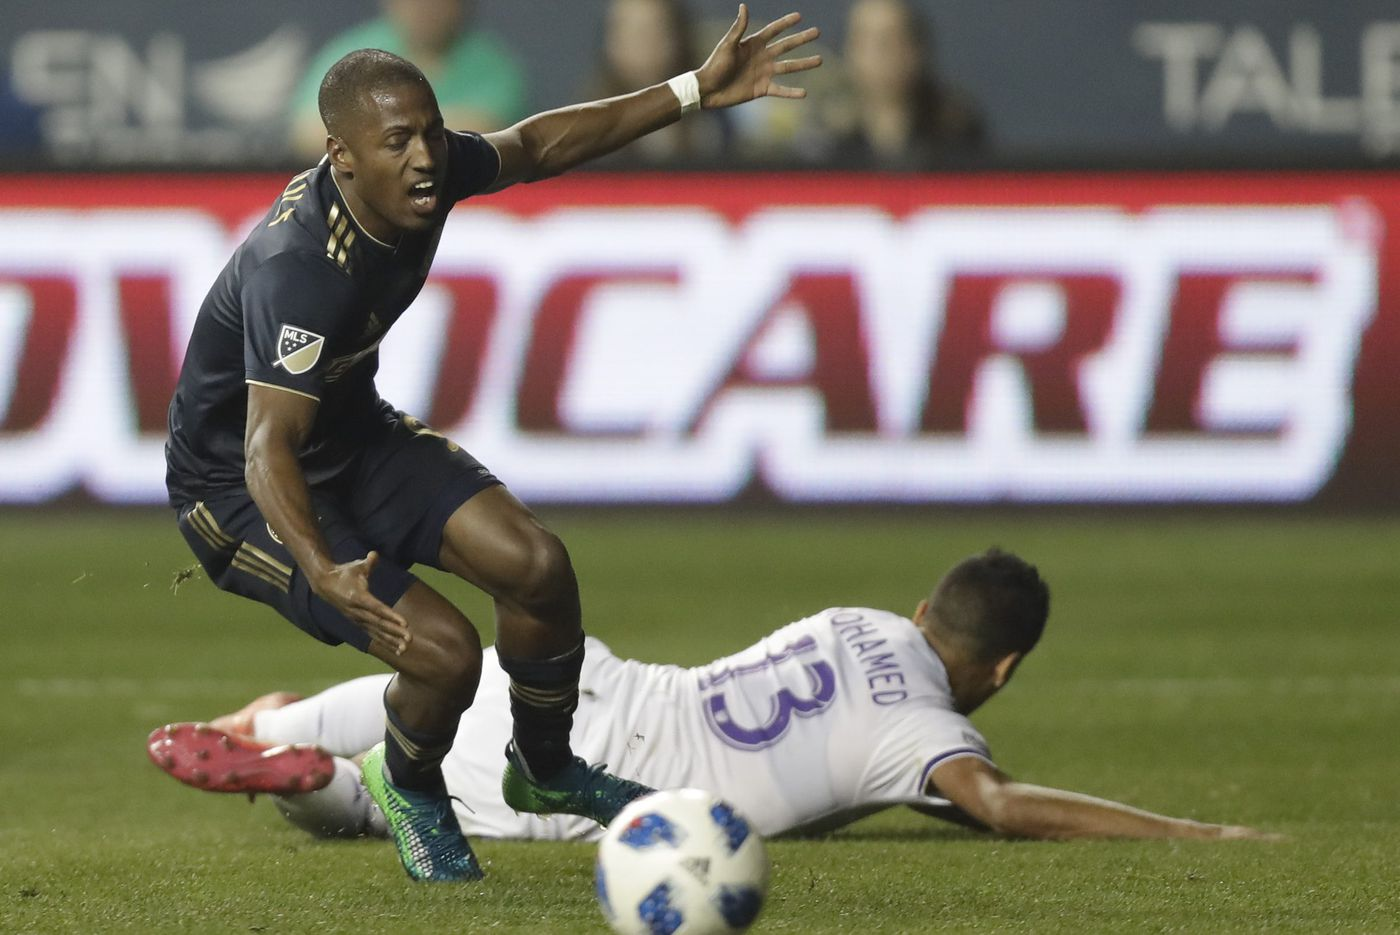 Union quiet for now, but season's toughest stretch begins next week